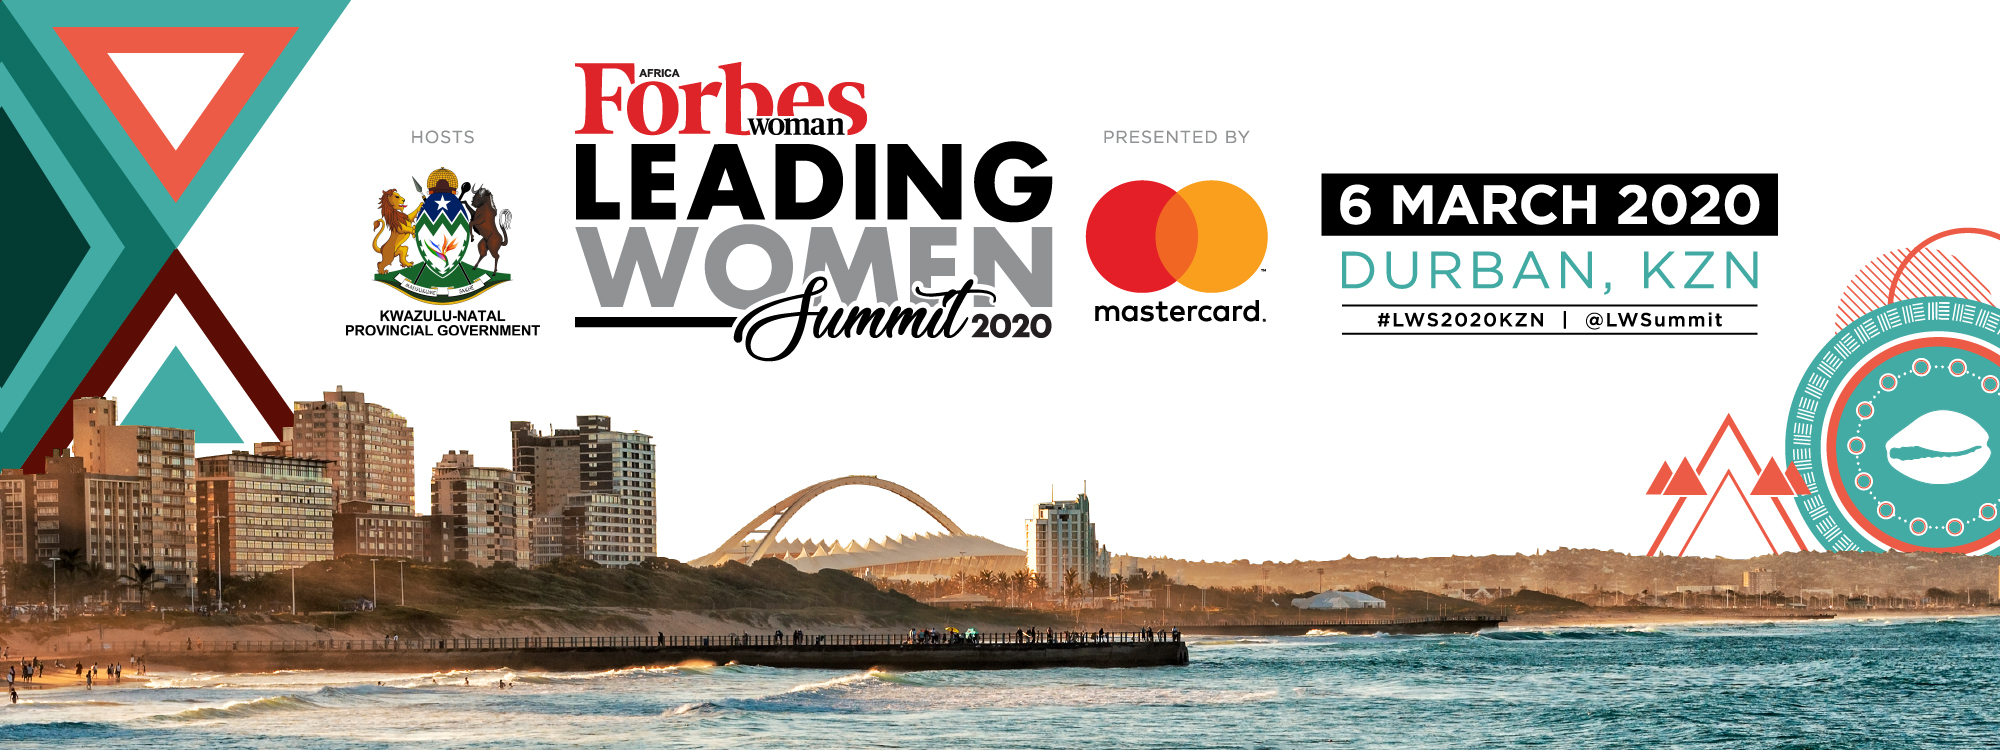 Forbes Woman Africa Leading Women Summit and Awards | 6 March 2020, Durban